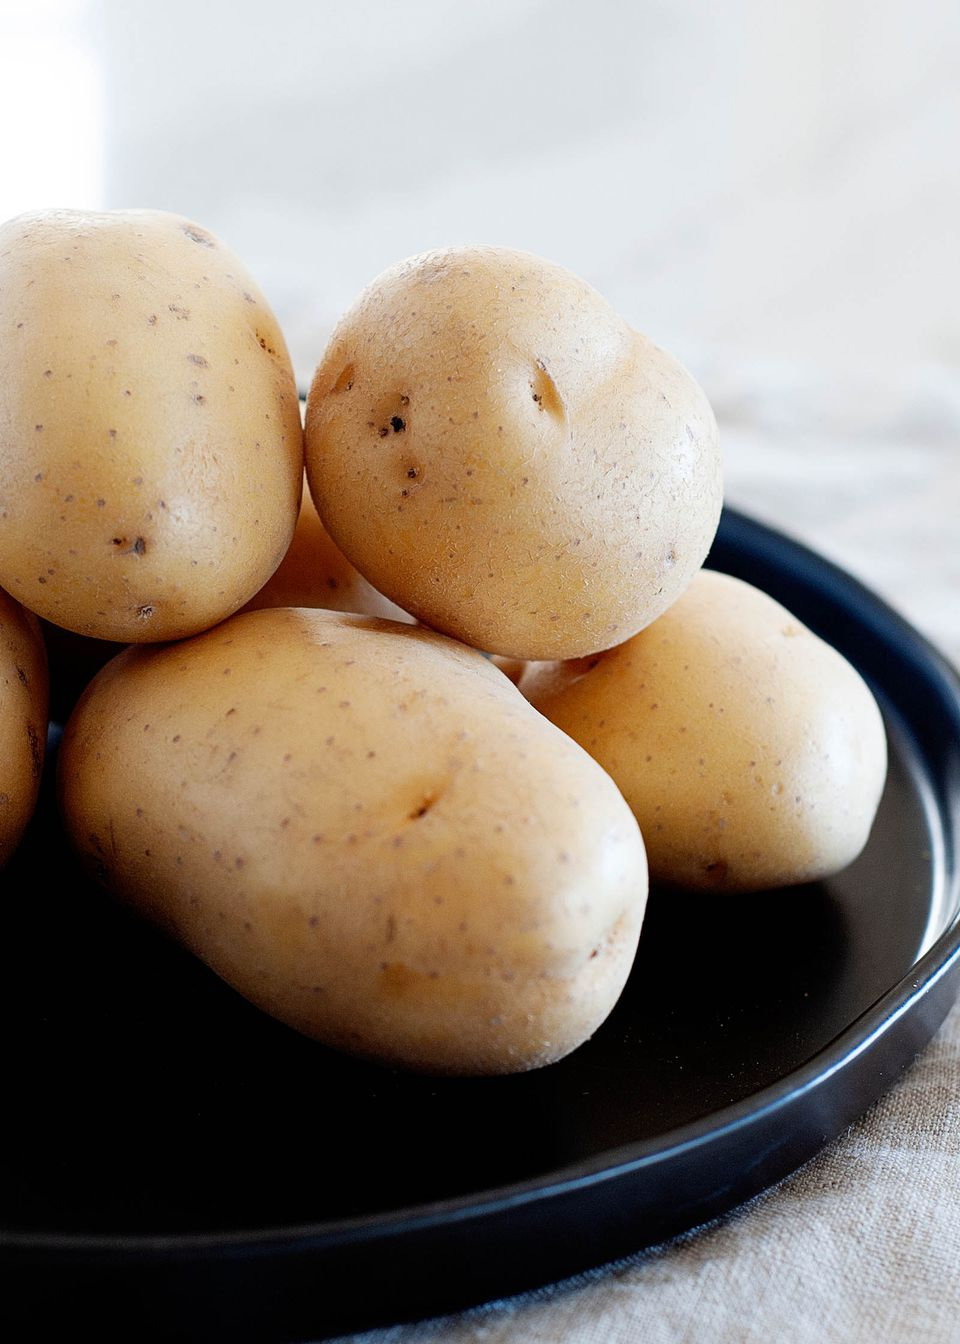 Side view of yellow potatoes on a black tray.